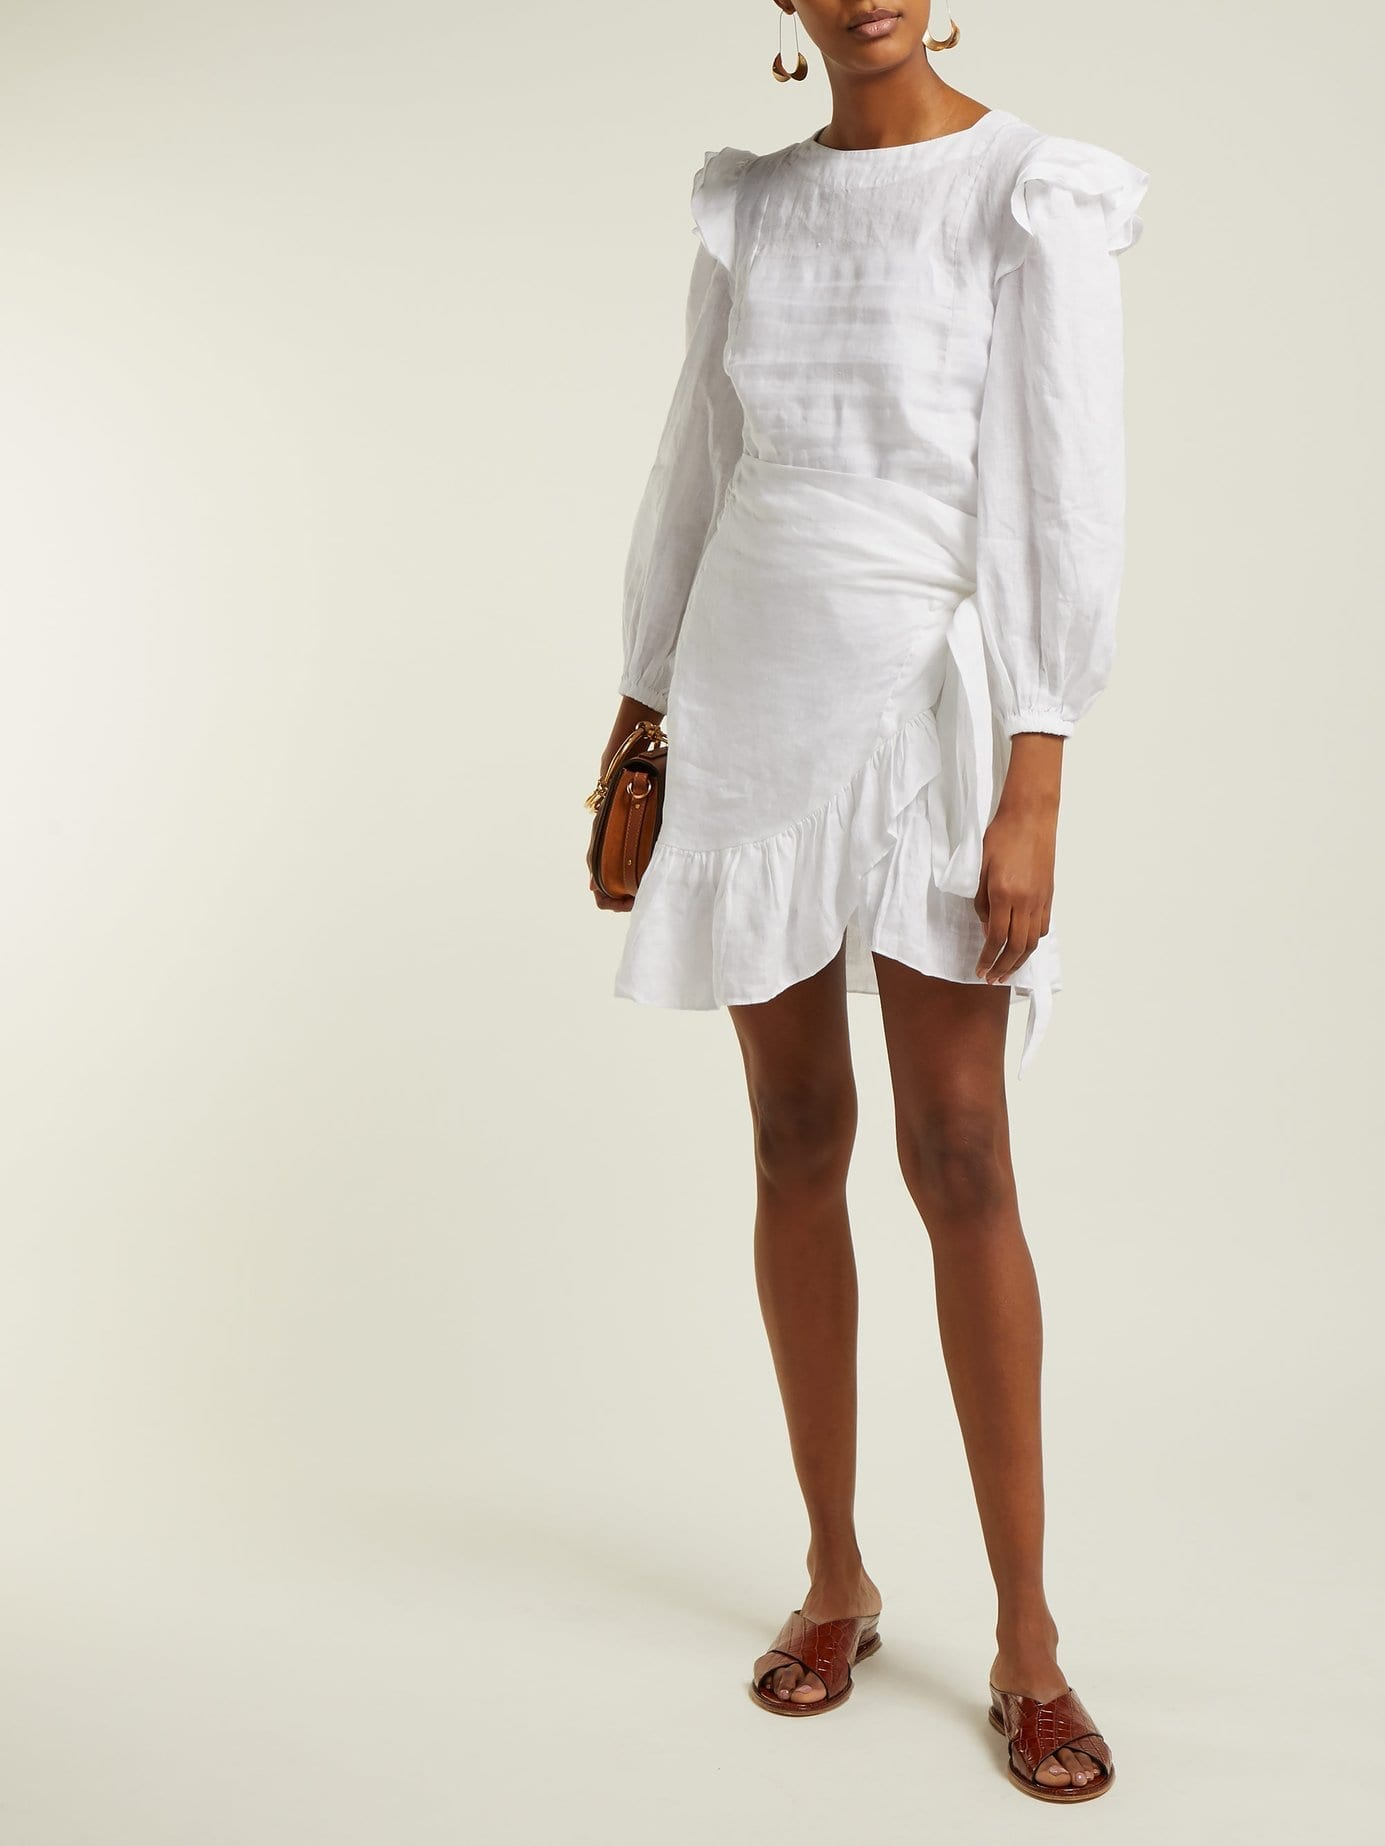 5374480cf9e ISABEL MARANT ÉTOILE Telicia Ruffle-trim Linen White Dress - We ...